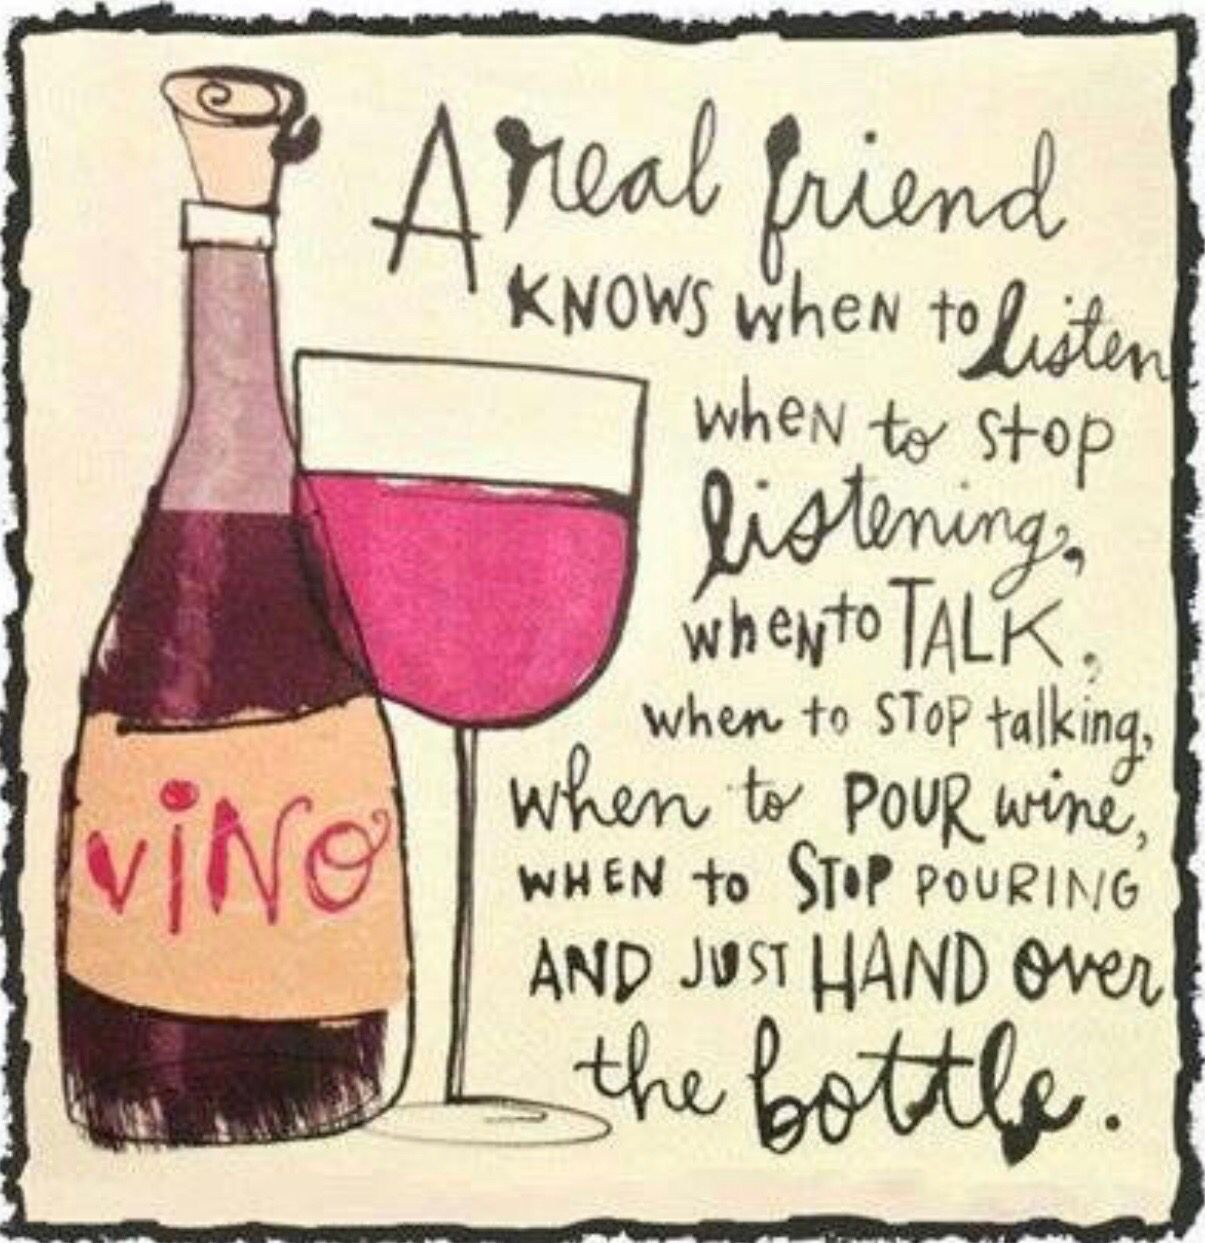 Don T You Love Your Realfriends Morewineplease Winefriends Winequotes Wine Quotes Wine Humor Wine